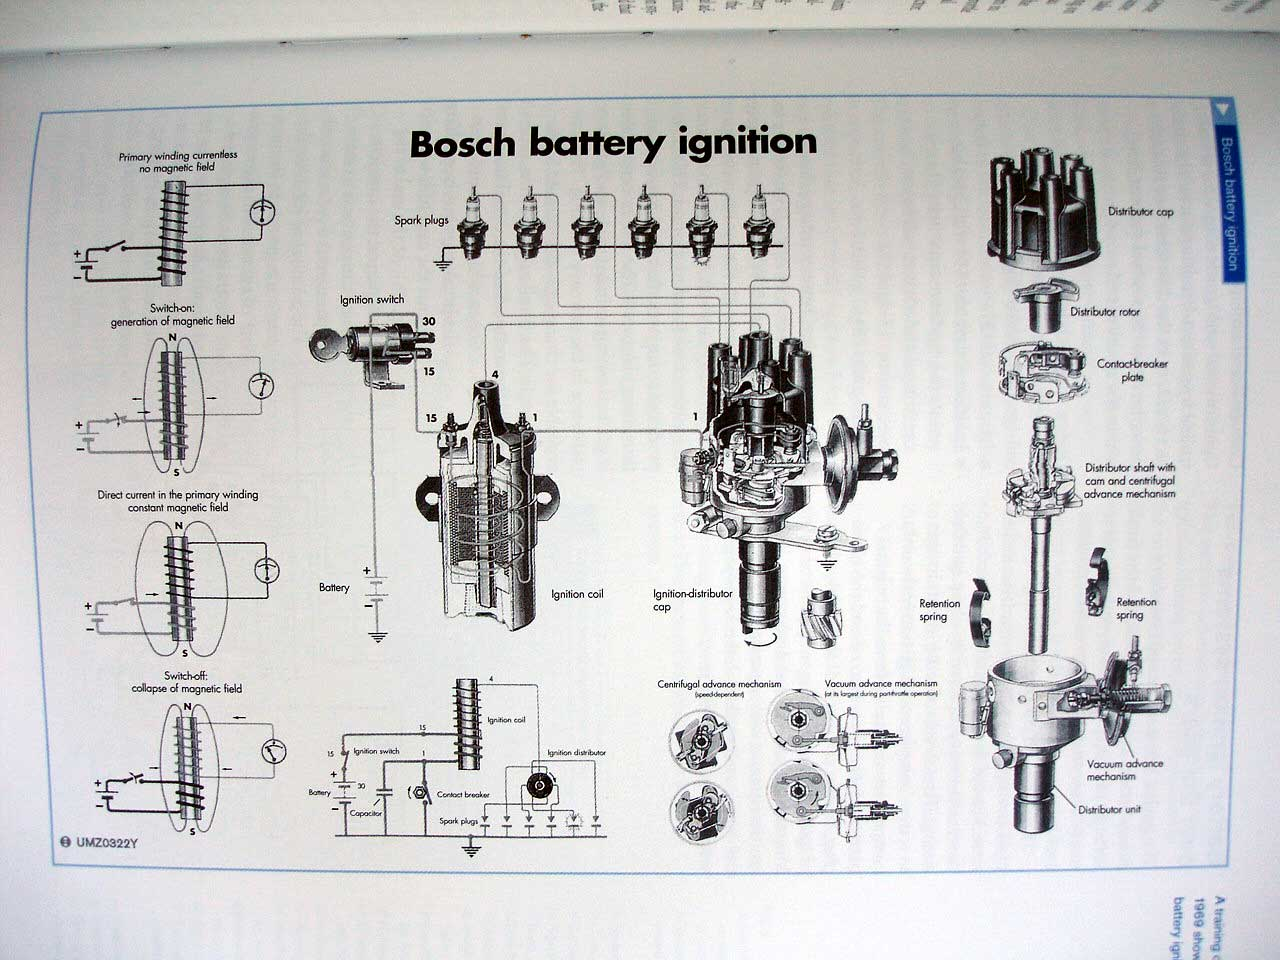 BoschBatteryIgnition understanding the ignition system electronic ignition distributor wiring diagram at crackthecode.co